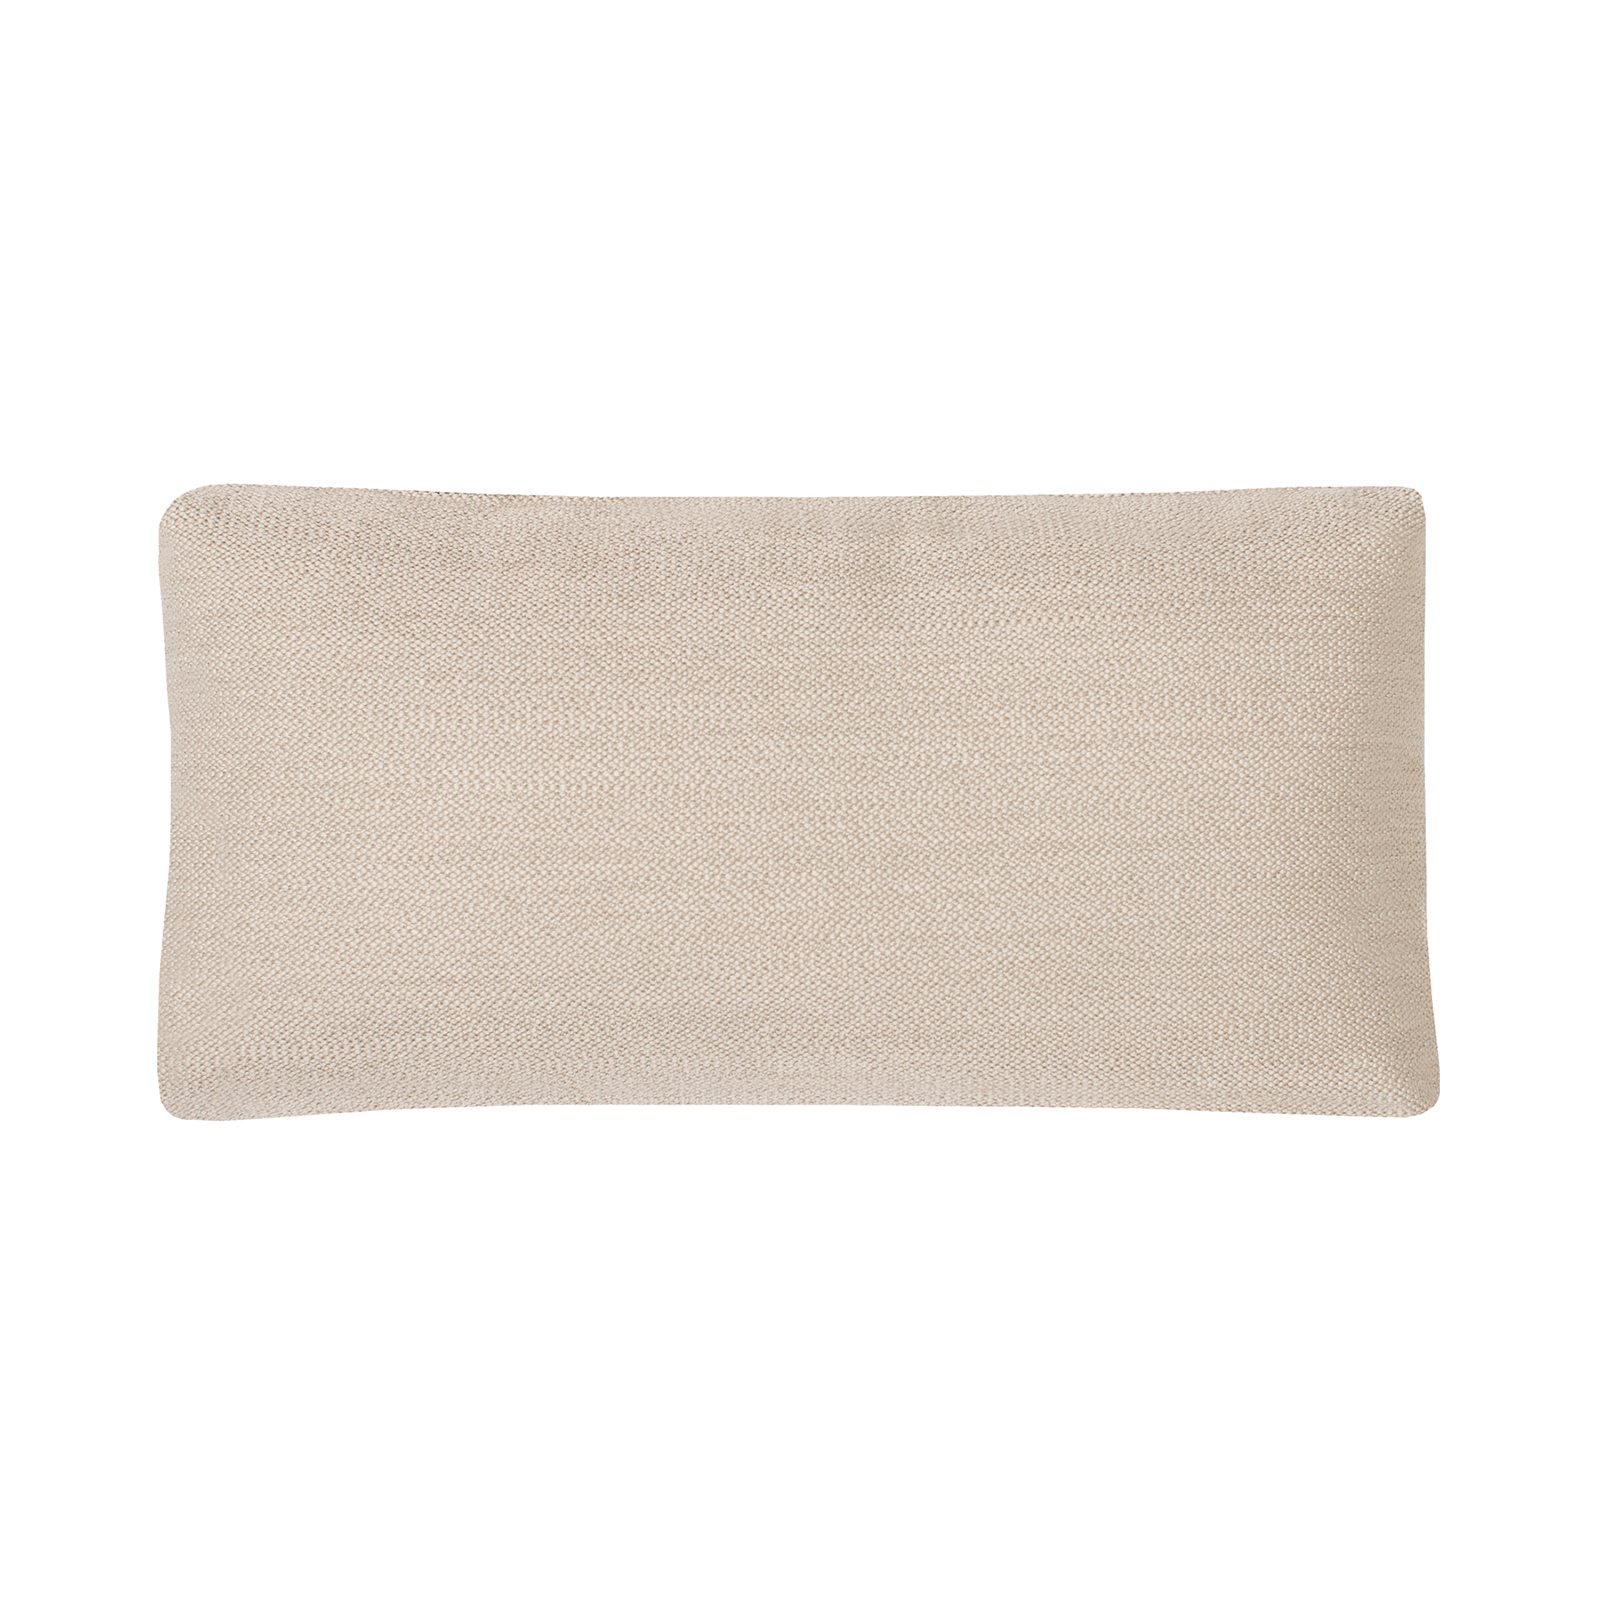 Permanent Future Perry Sofa Cushion Small Pure Pumice Pf Pr Cu S Pp Front View